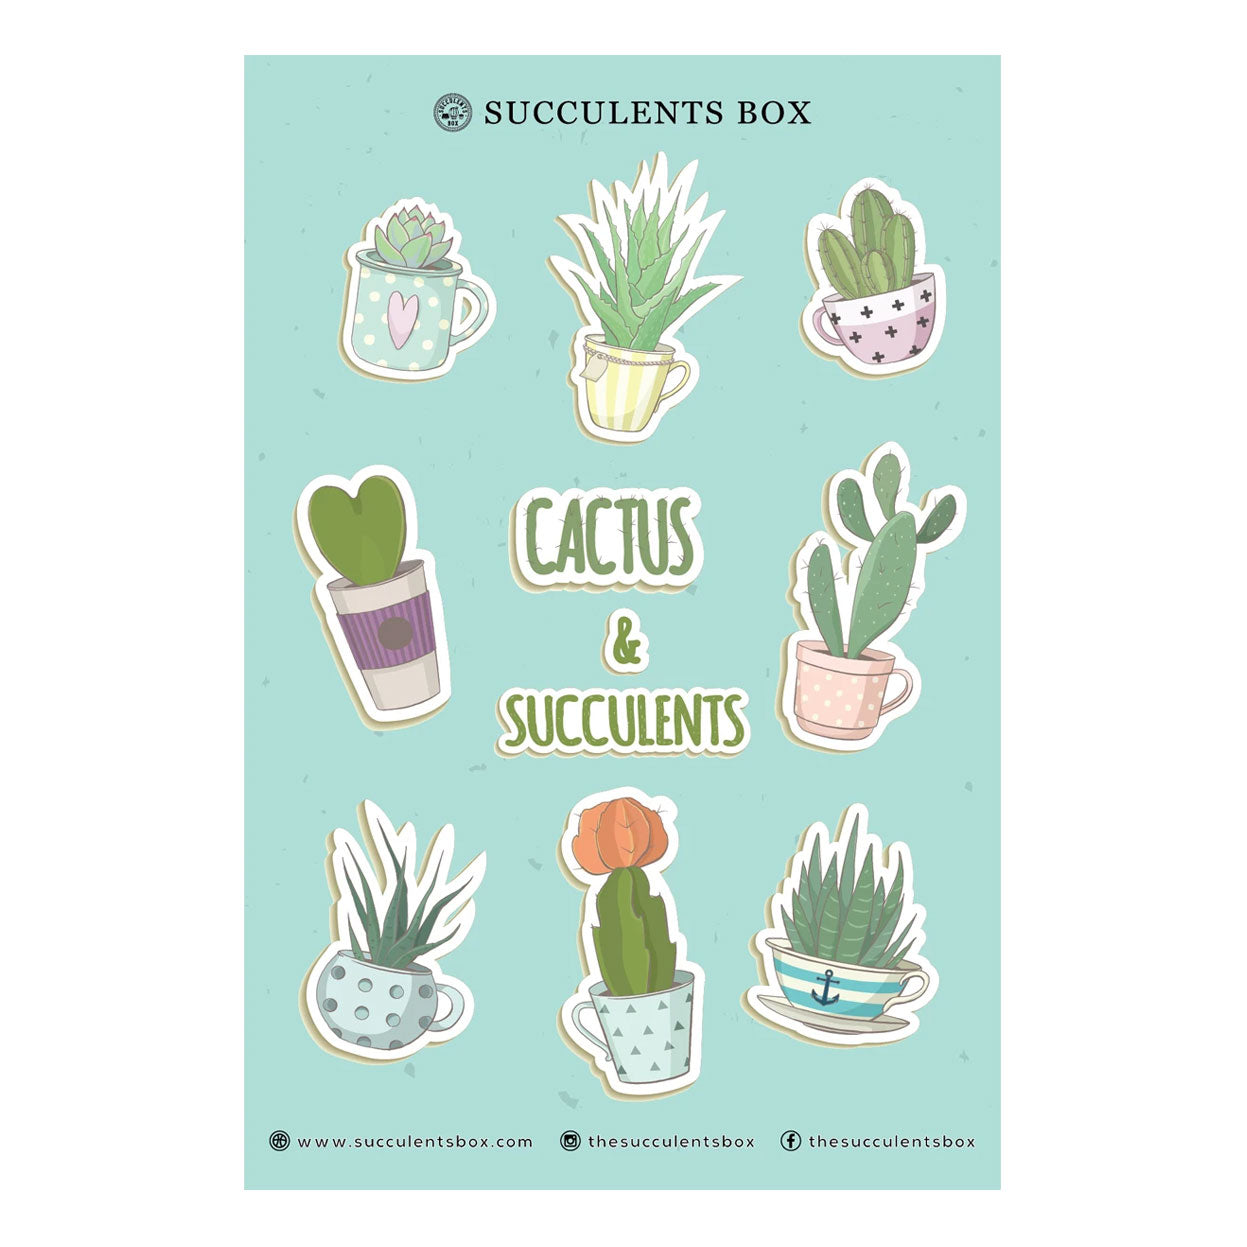 Cactus & Succulents Sticker for sale, Cute Potted Succulent Sticker, Happy Succulent Planner Sticker, Laptop Sticker for sale, Water Bottle Sticker for sale